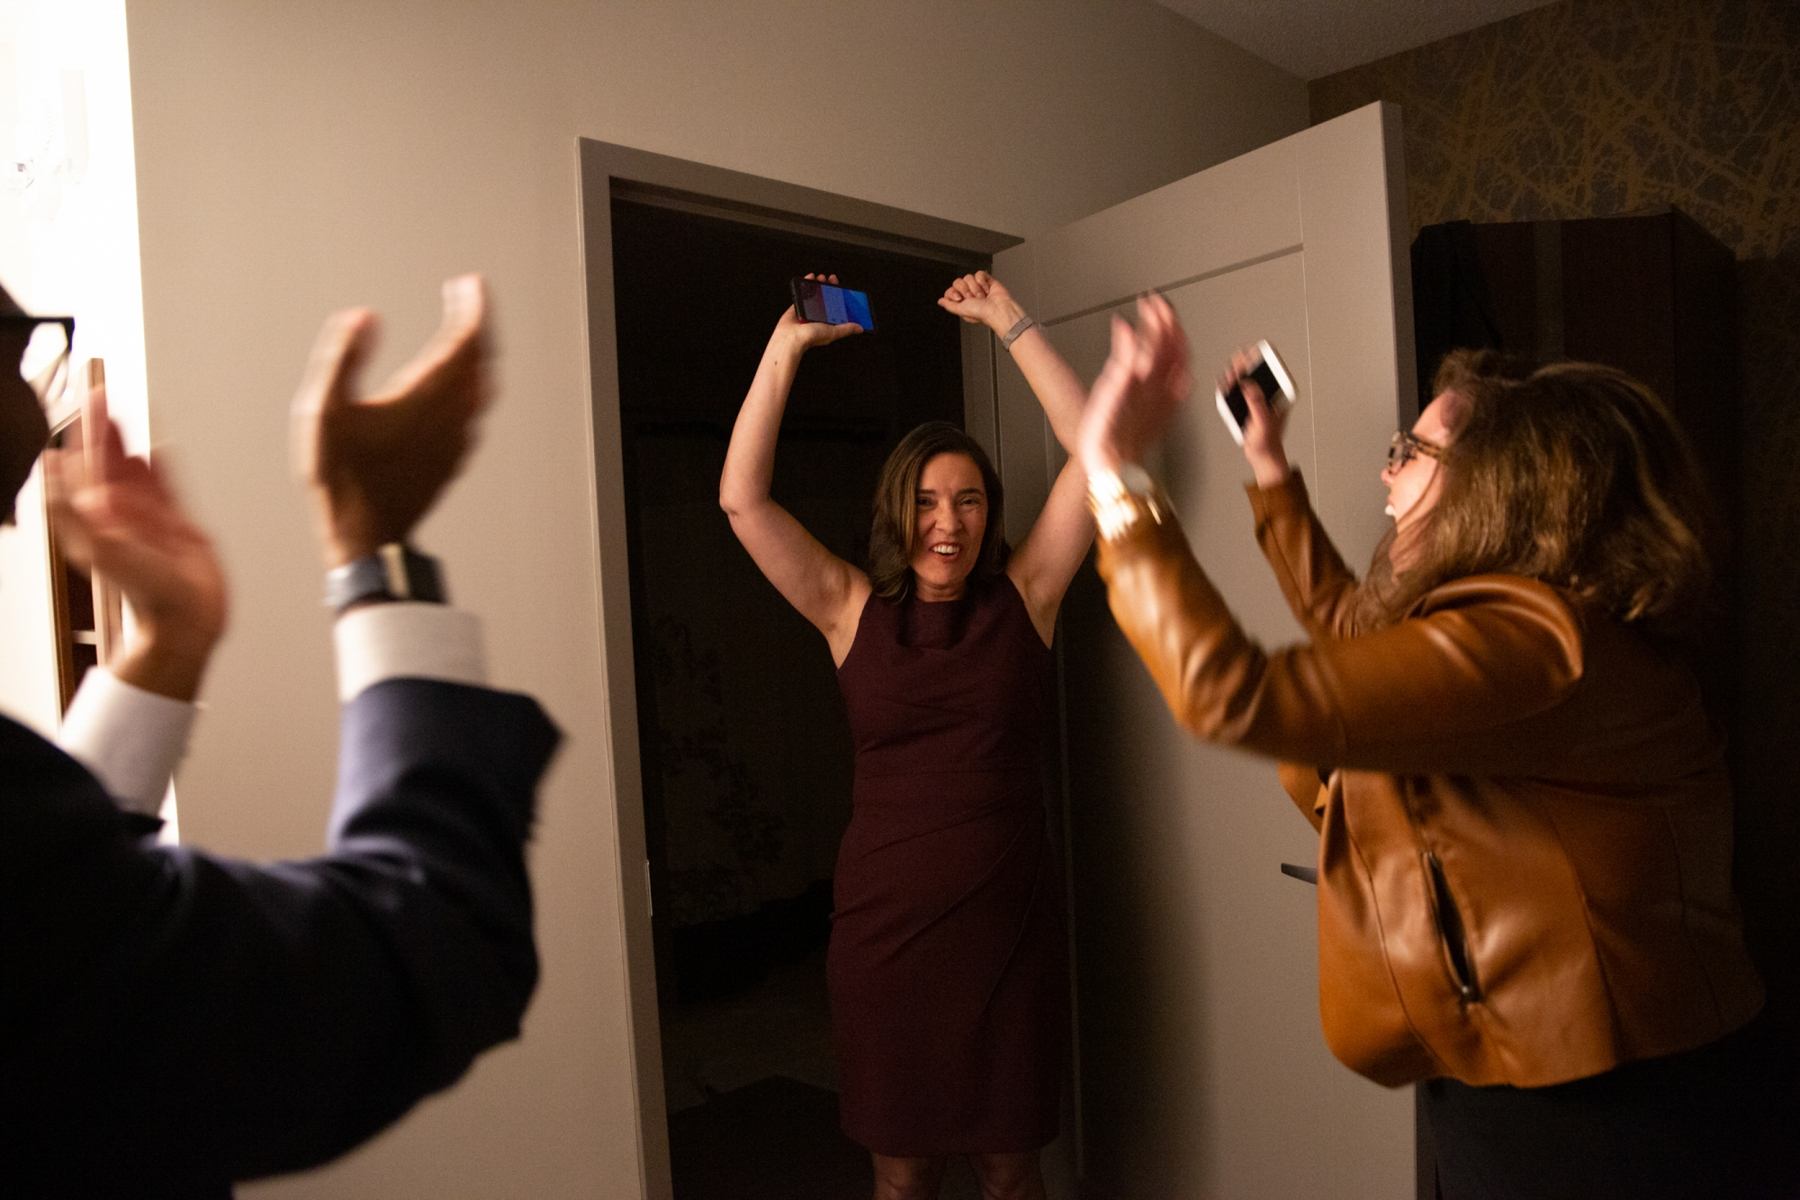 """On election night, after Justice Barbara Jackson, Anita Earls' leading opponent called her and conceded, Earls, Caroline Spencer, and José Morales scream in celebration in their hotel """"war room"""" in Raleigh, N.C.""""This is a moment I will never forget,"""" says Caroline Spencer, Earls' campaign manager.  Anita Earls became the 100th justice of the N.C. Supreme Court."""